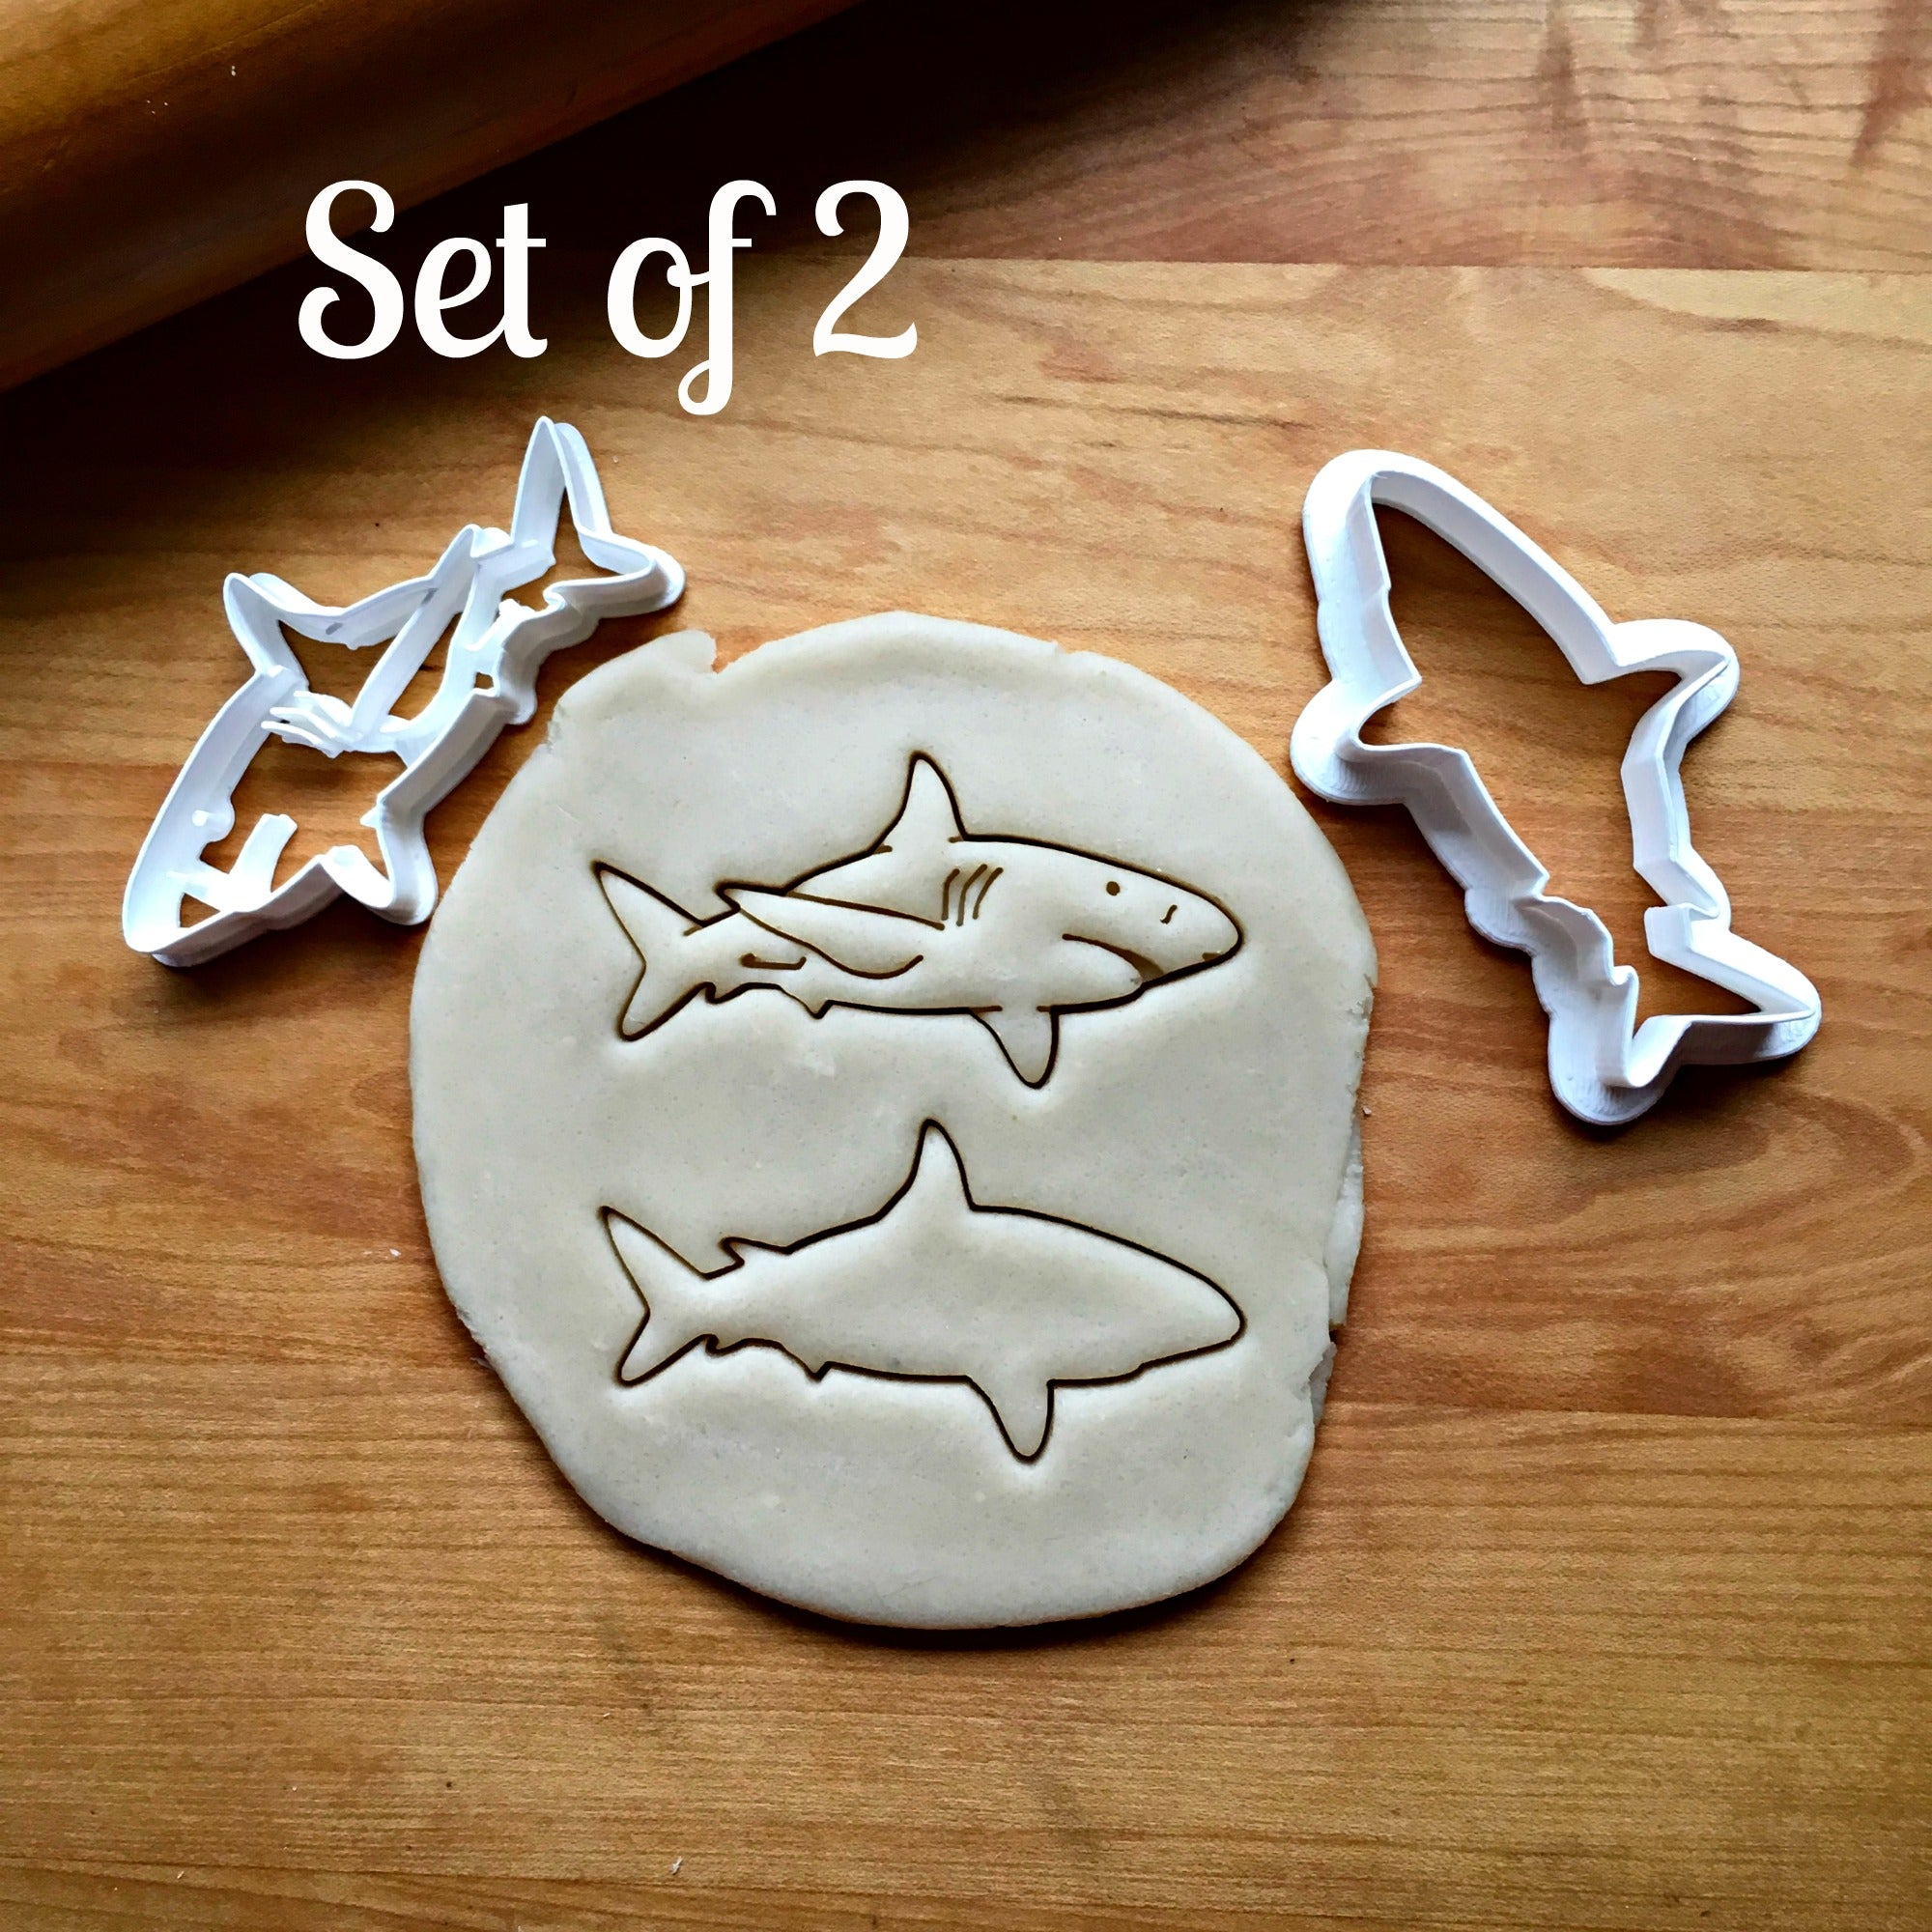 Set of 2 Great White Shark Cookie Cutters/Dishwasher Safe